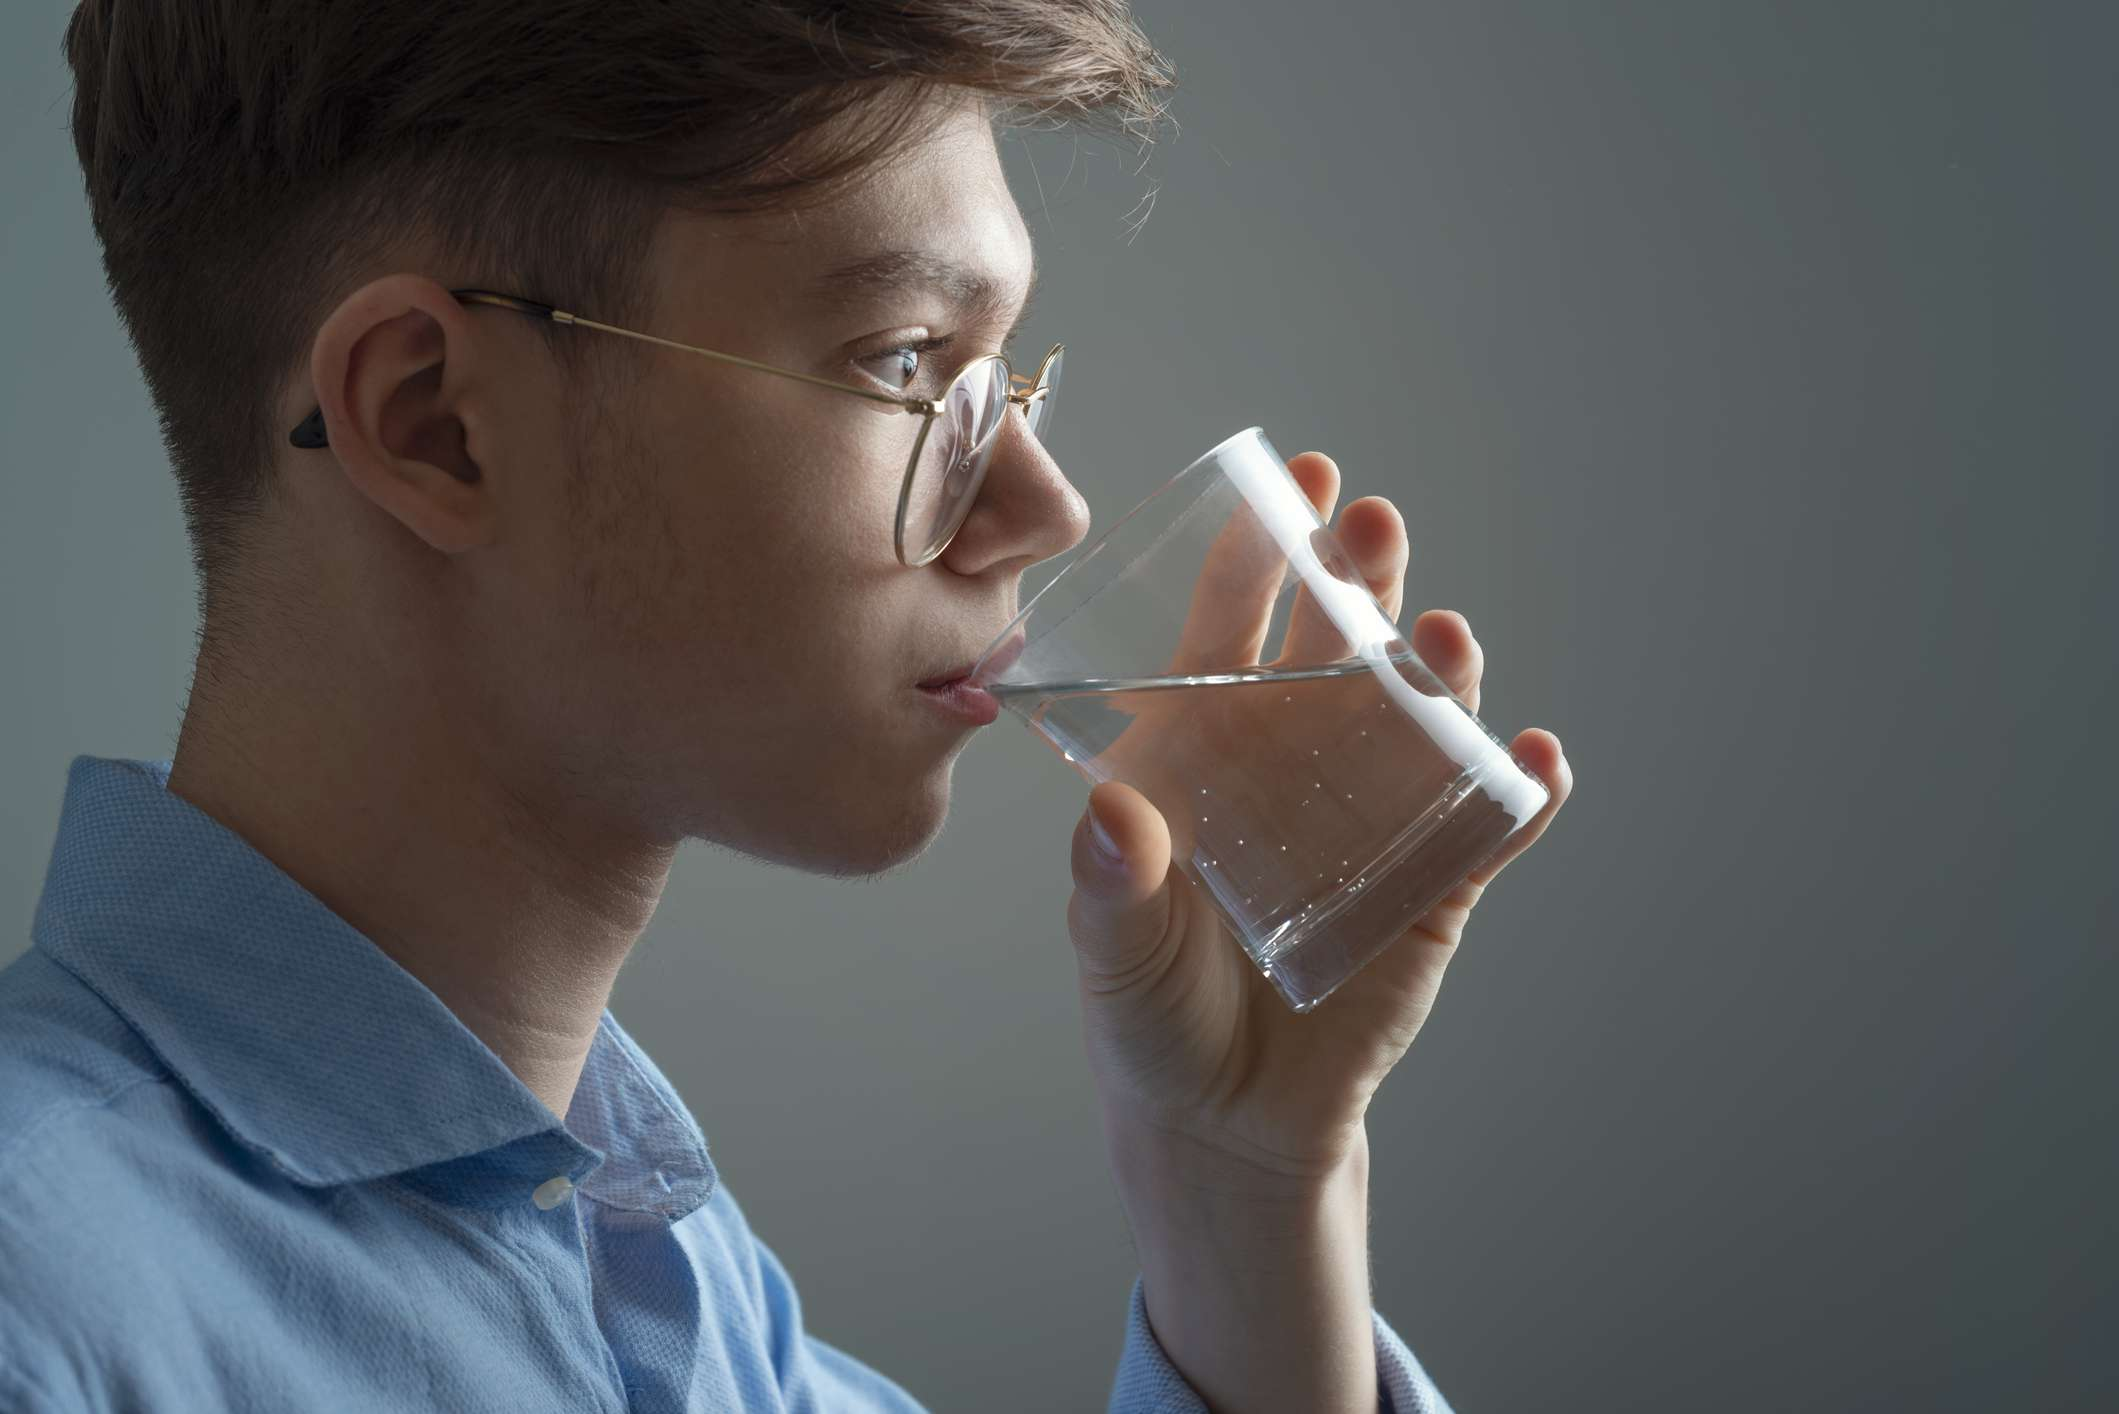 does drinking water help acne?